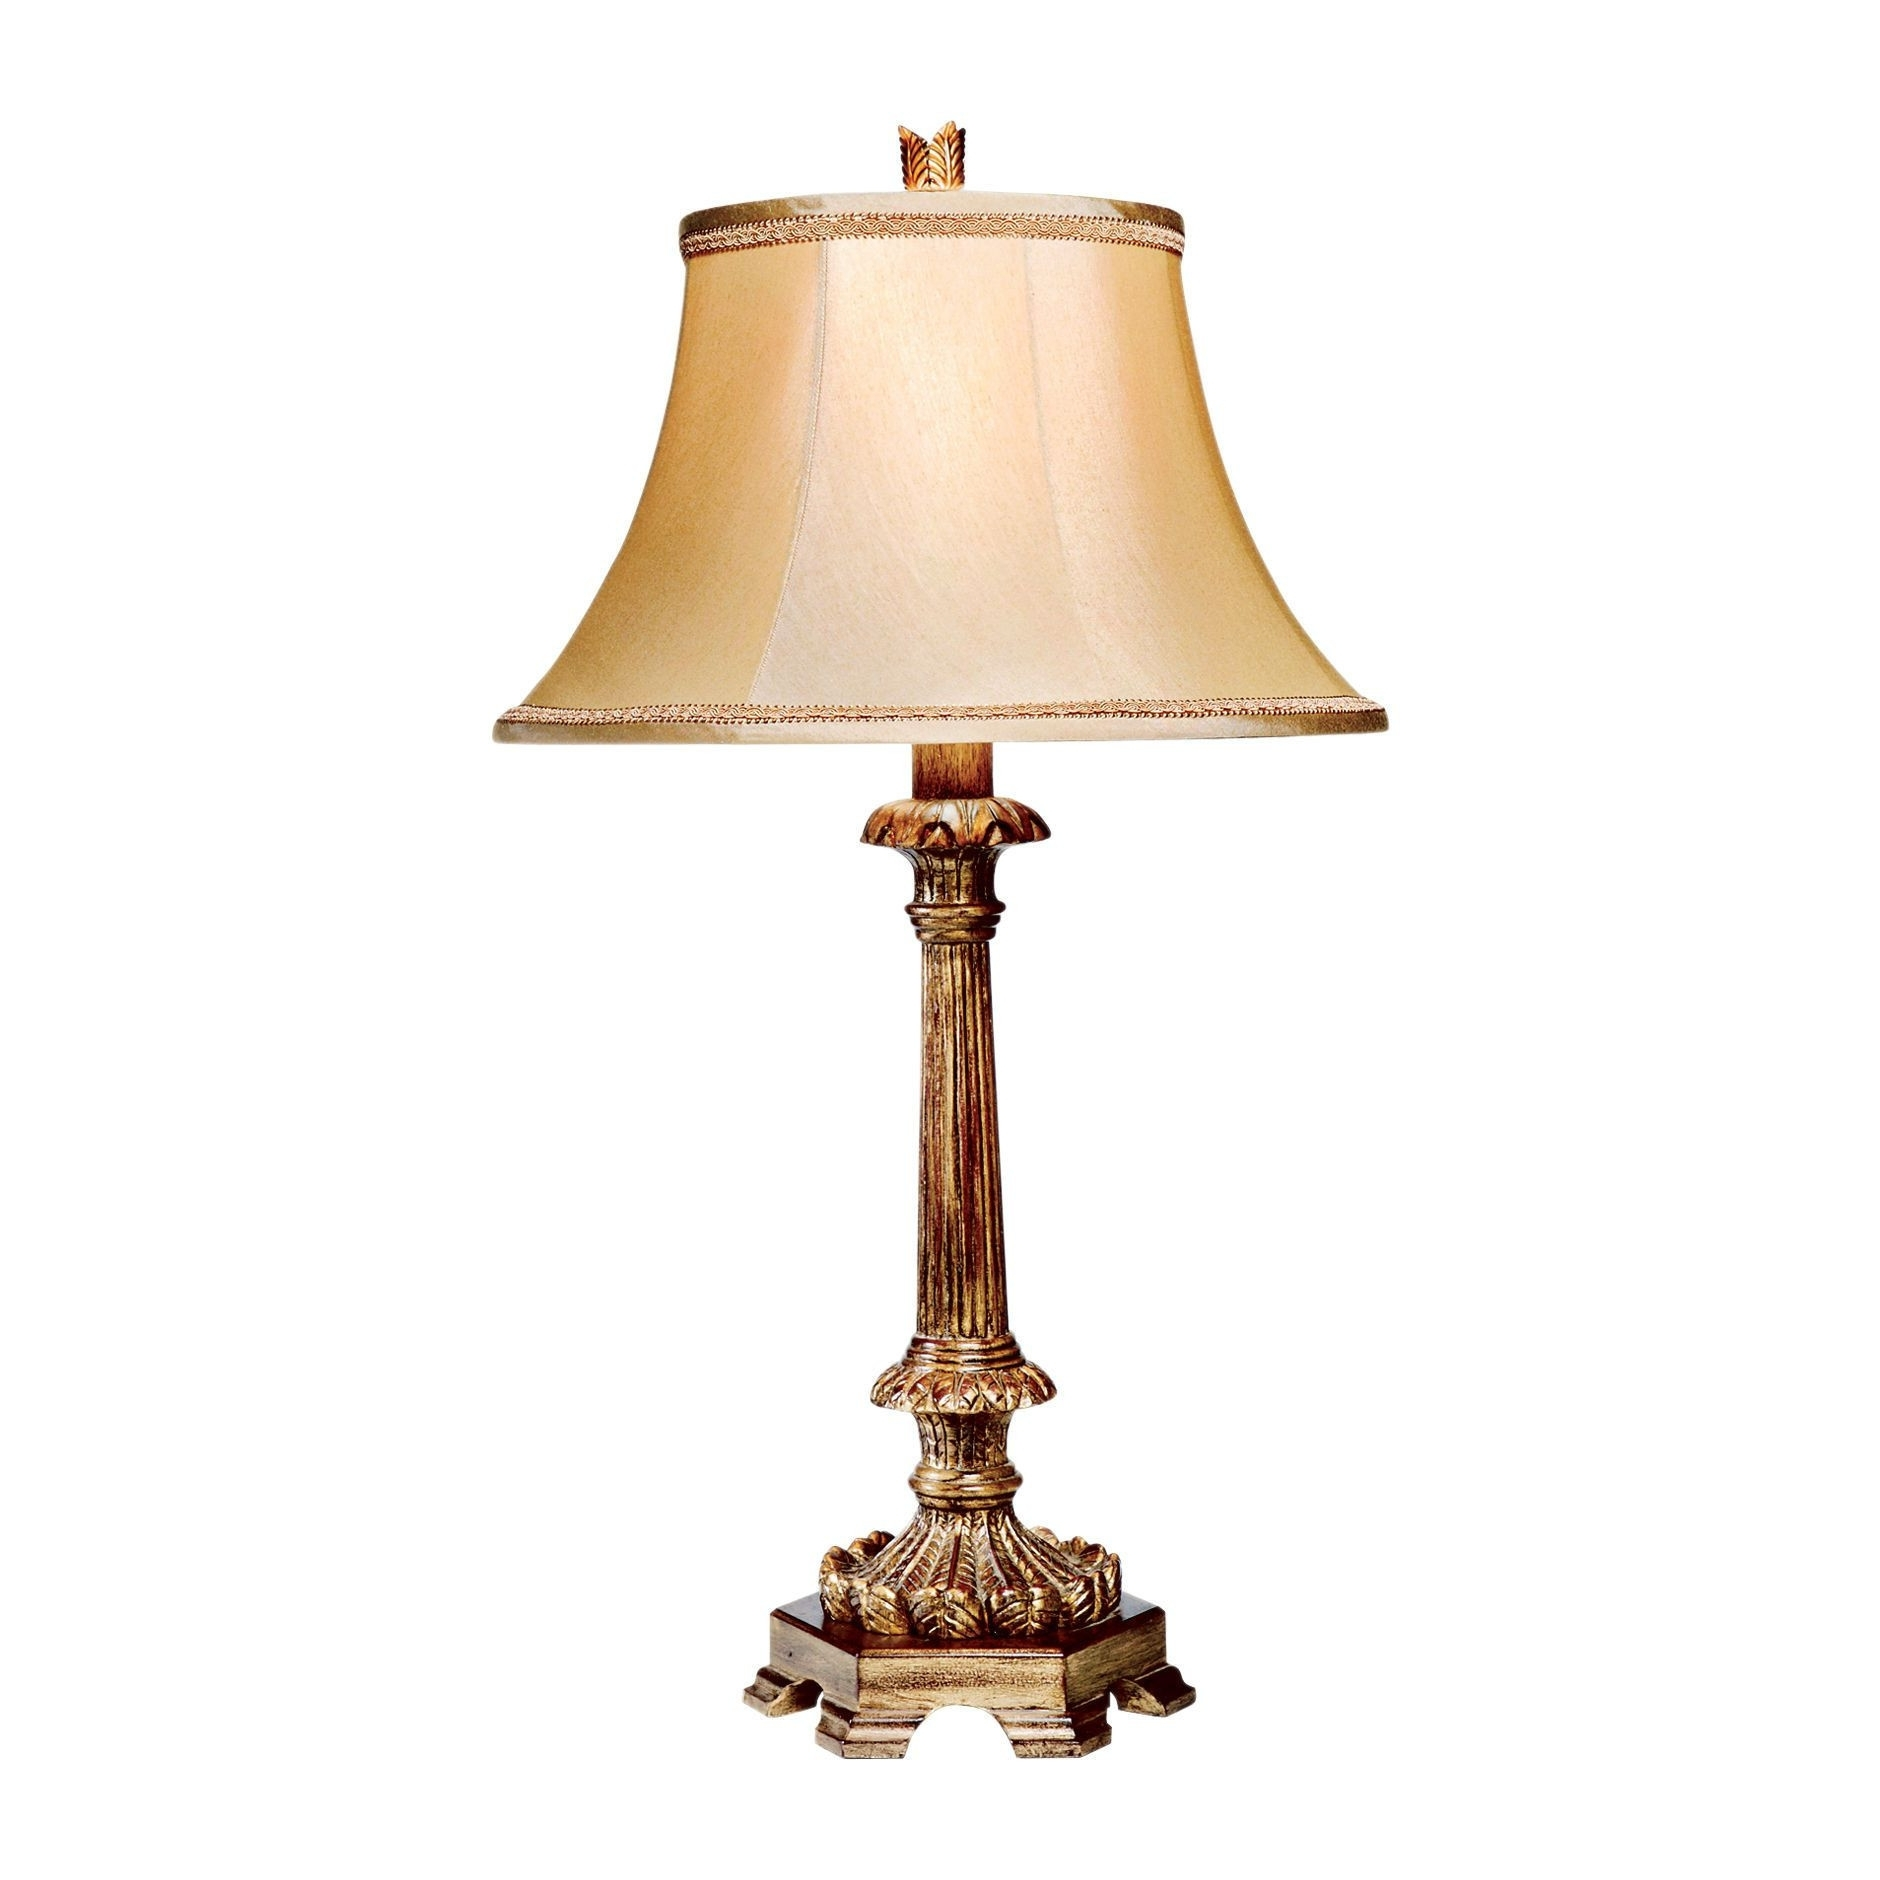 Most Recently Released Tuscan Table Lamps For Living Room Throughout Cordless Floor Lamps For Living Room Lovely 34 Awesome Tuscan Table (View 5 of 20)